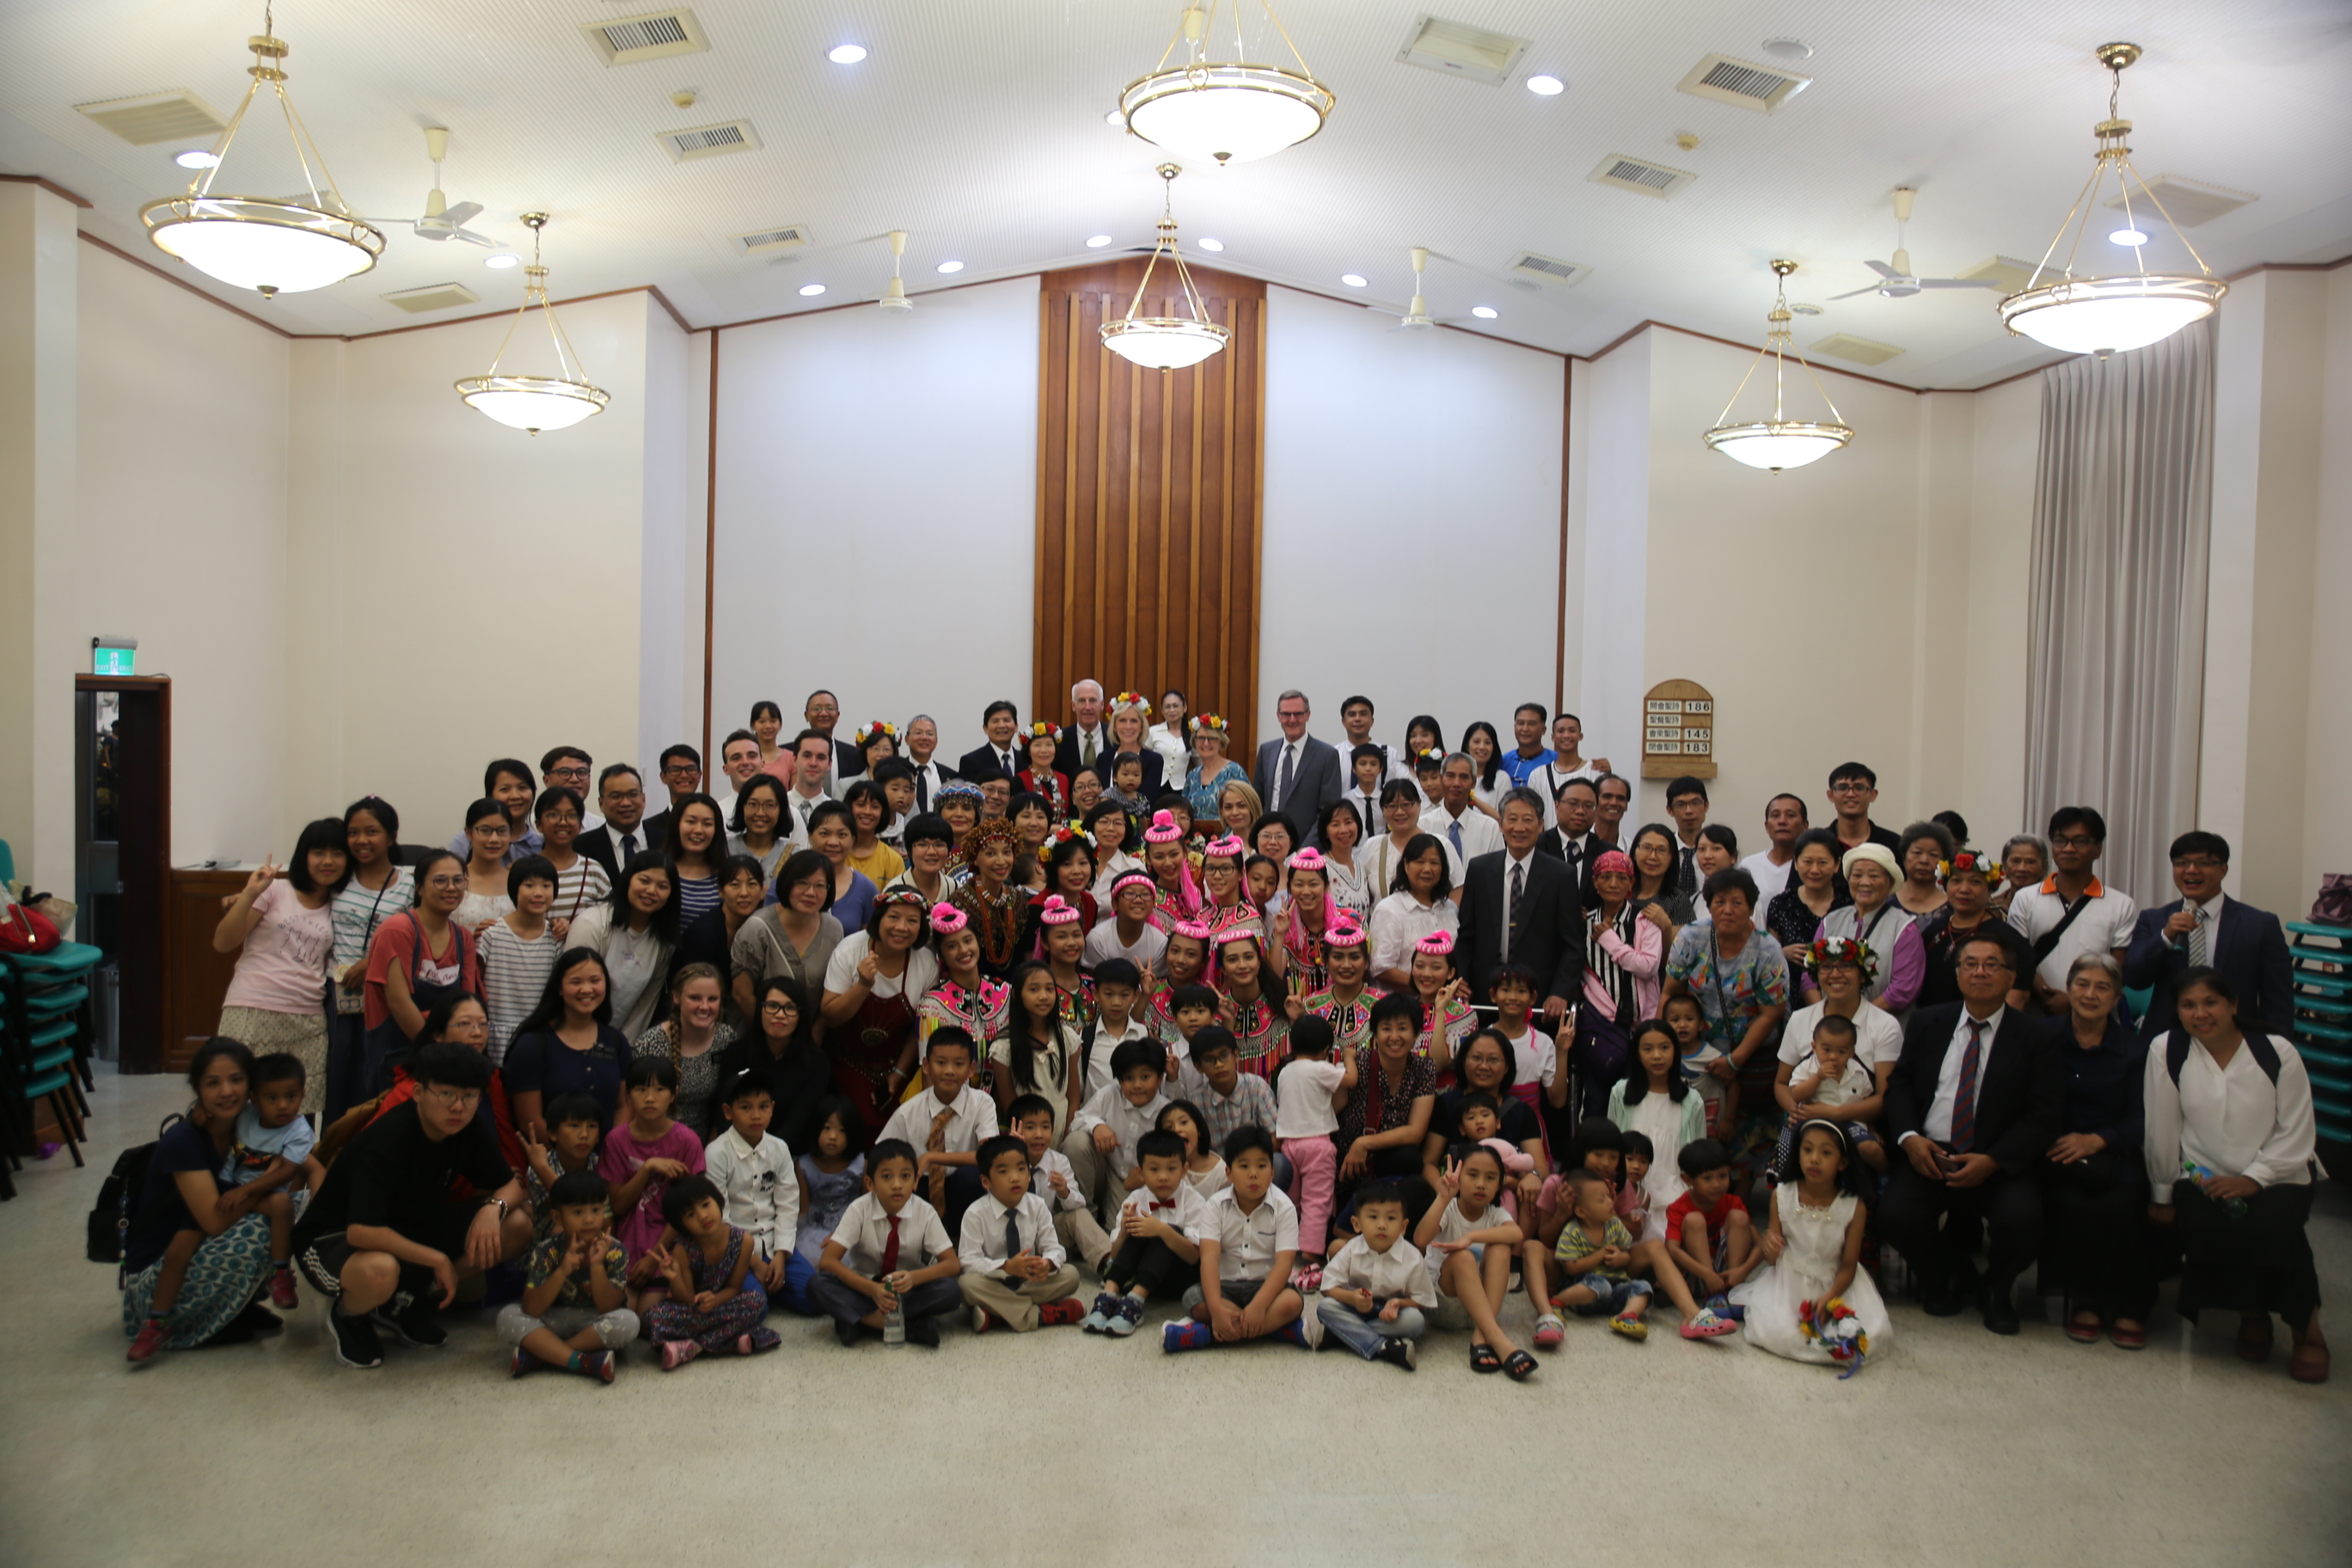 Sister Joy D. Jones, Primary general president, takes a photos with members following a devotional in Taitung, Taiwan, during a visit to the Asia Area from Aug. 17 to 14, 2019.